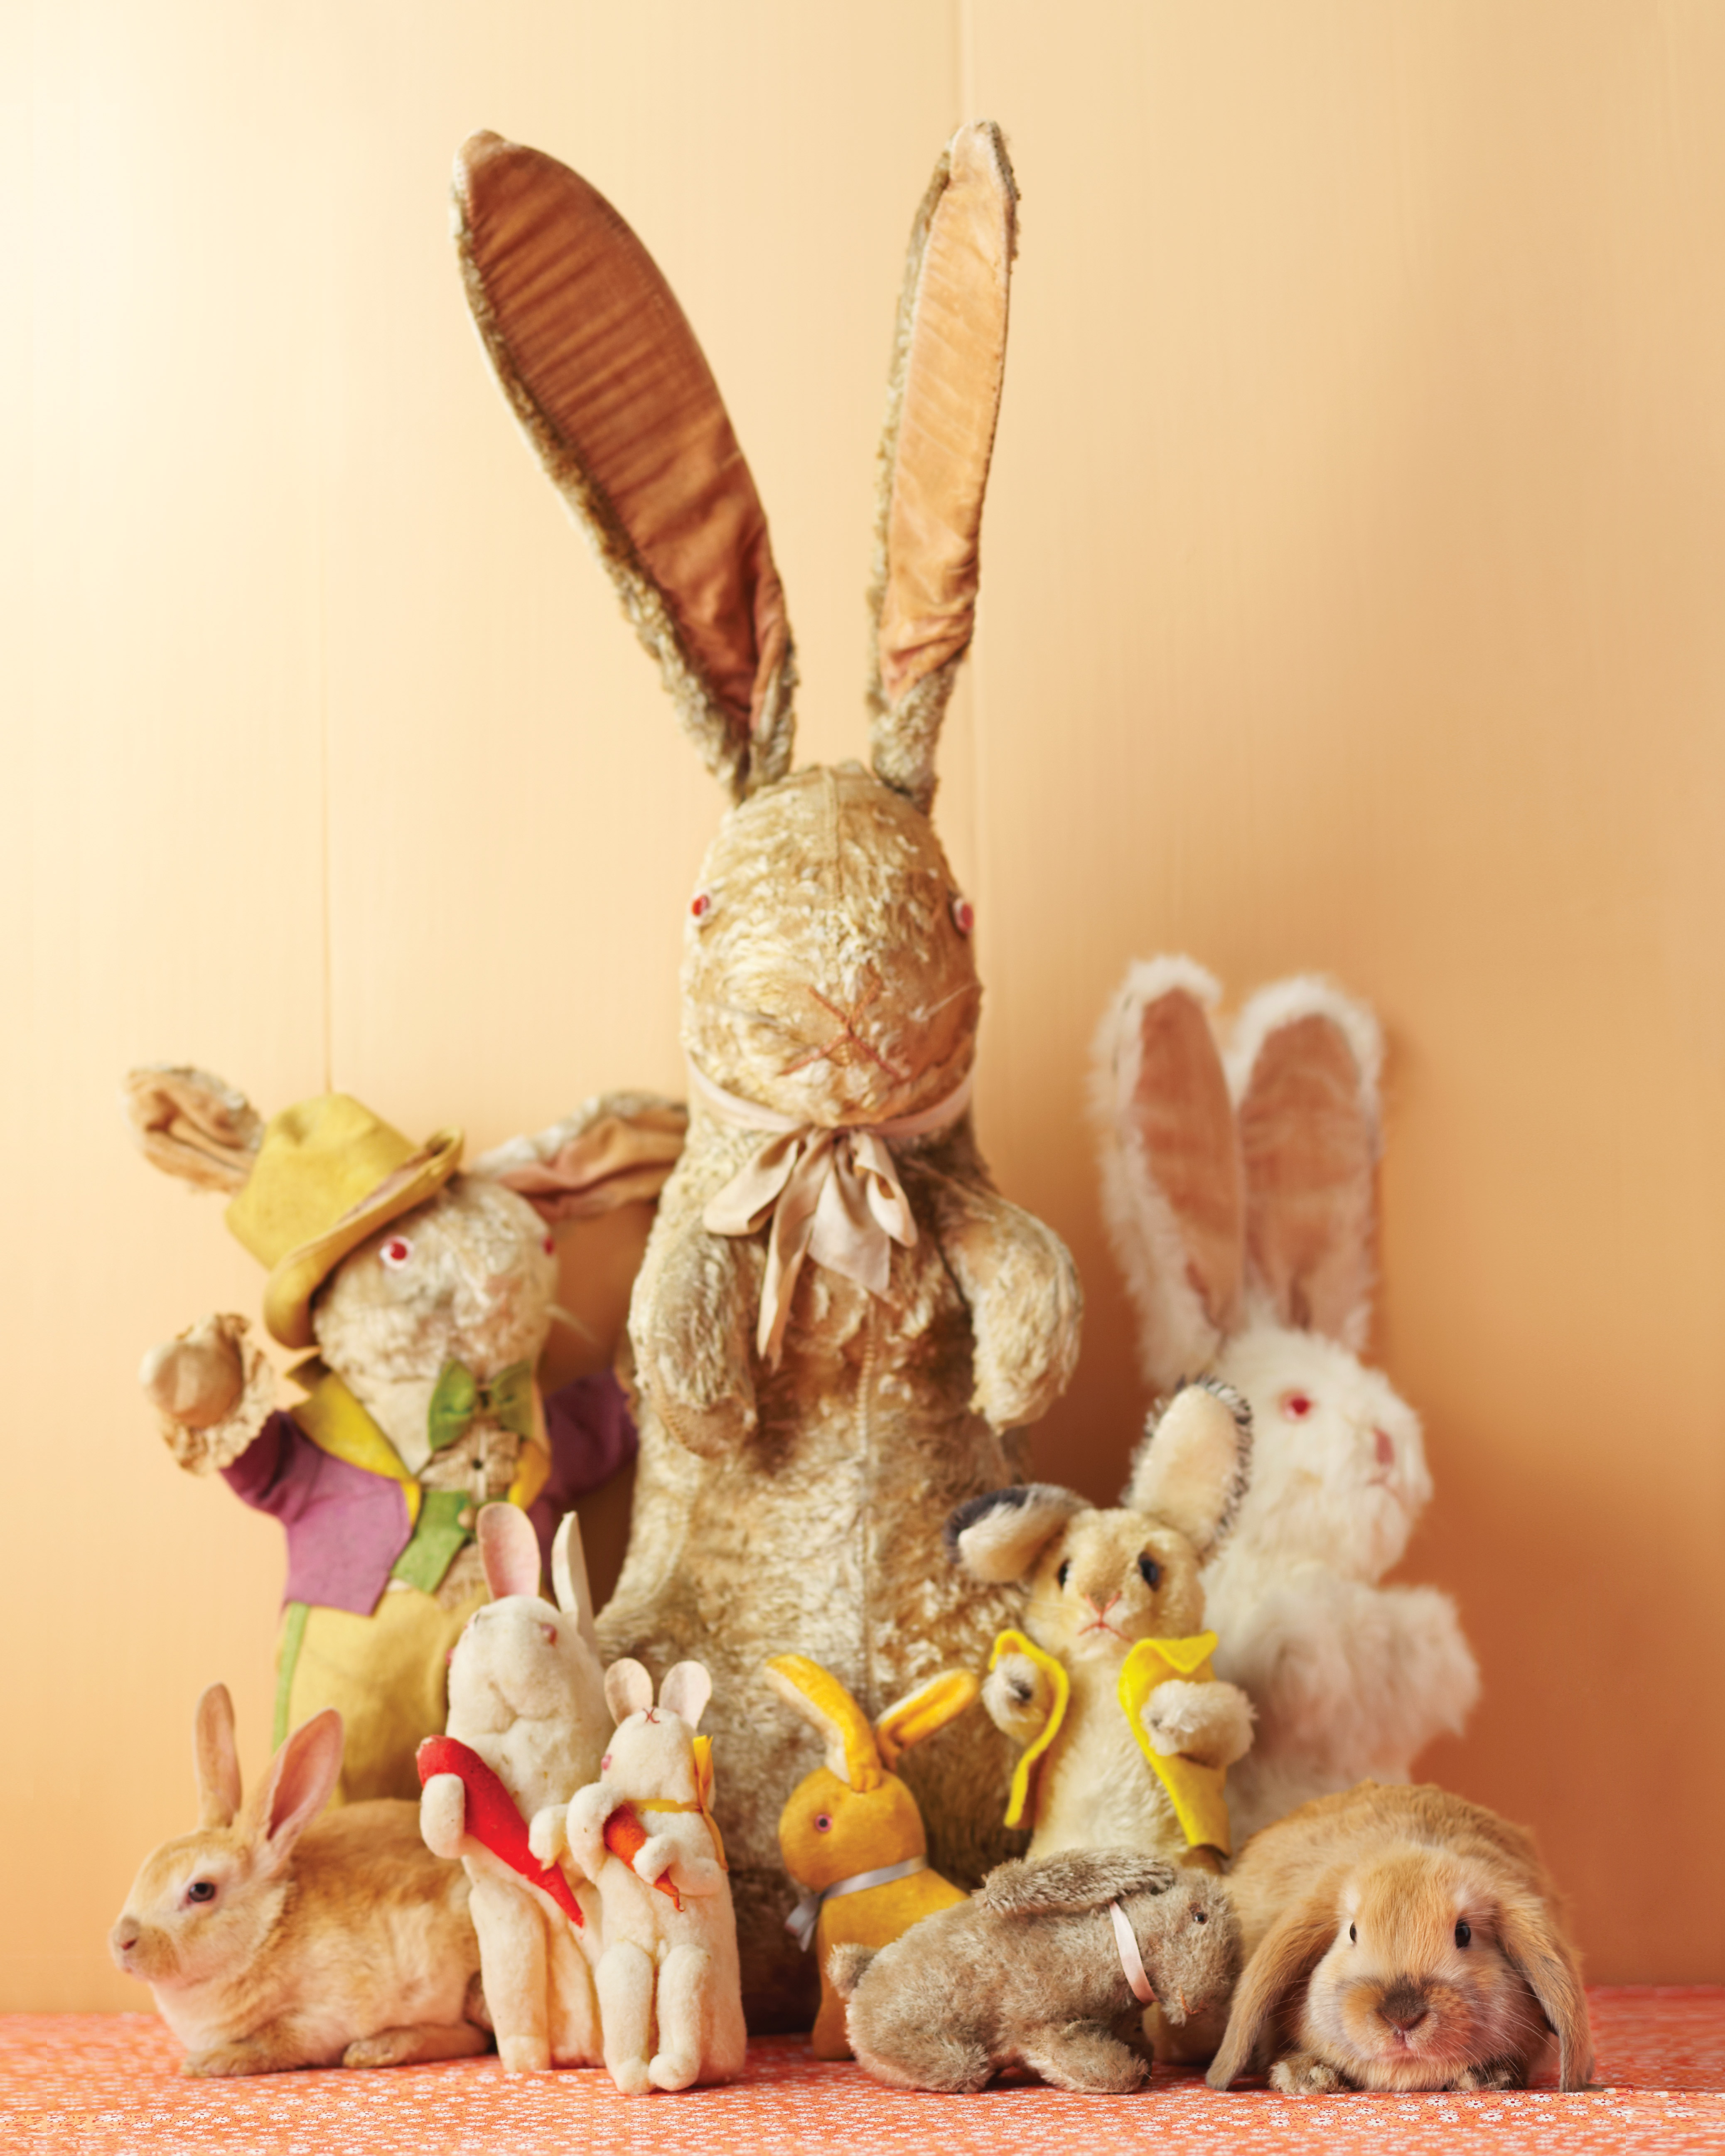 The Easter Bunny's Surprising Origin Story